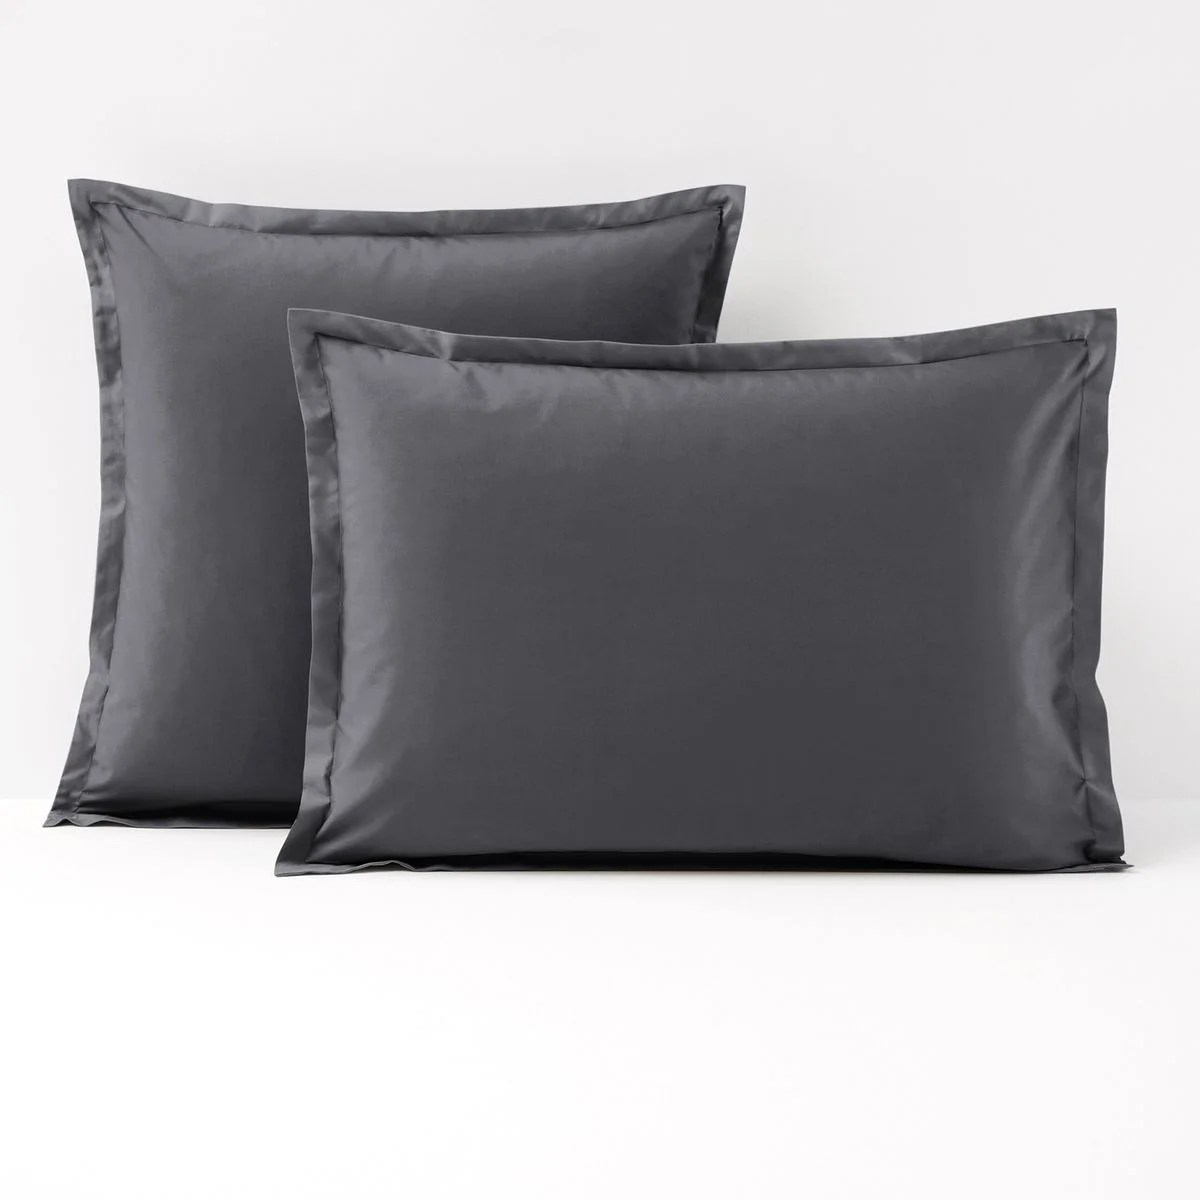 taie d oreiller percale qualite best taie d oreiller percale qualite best la redoute